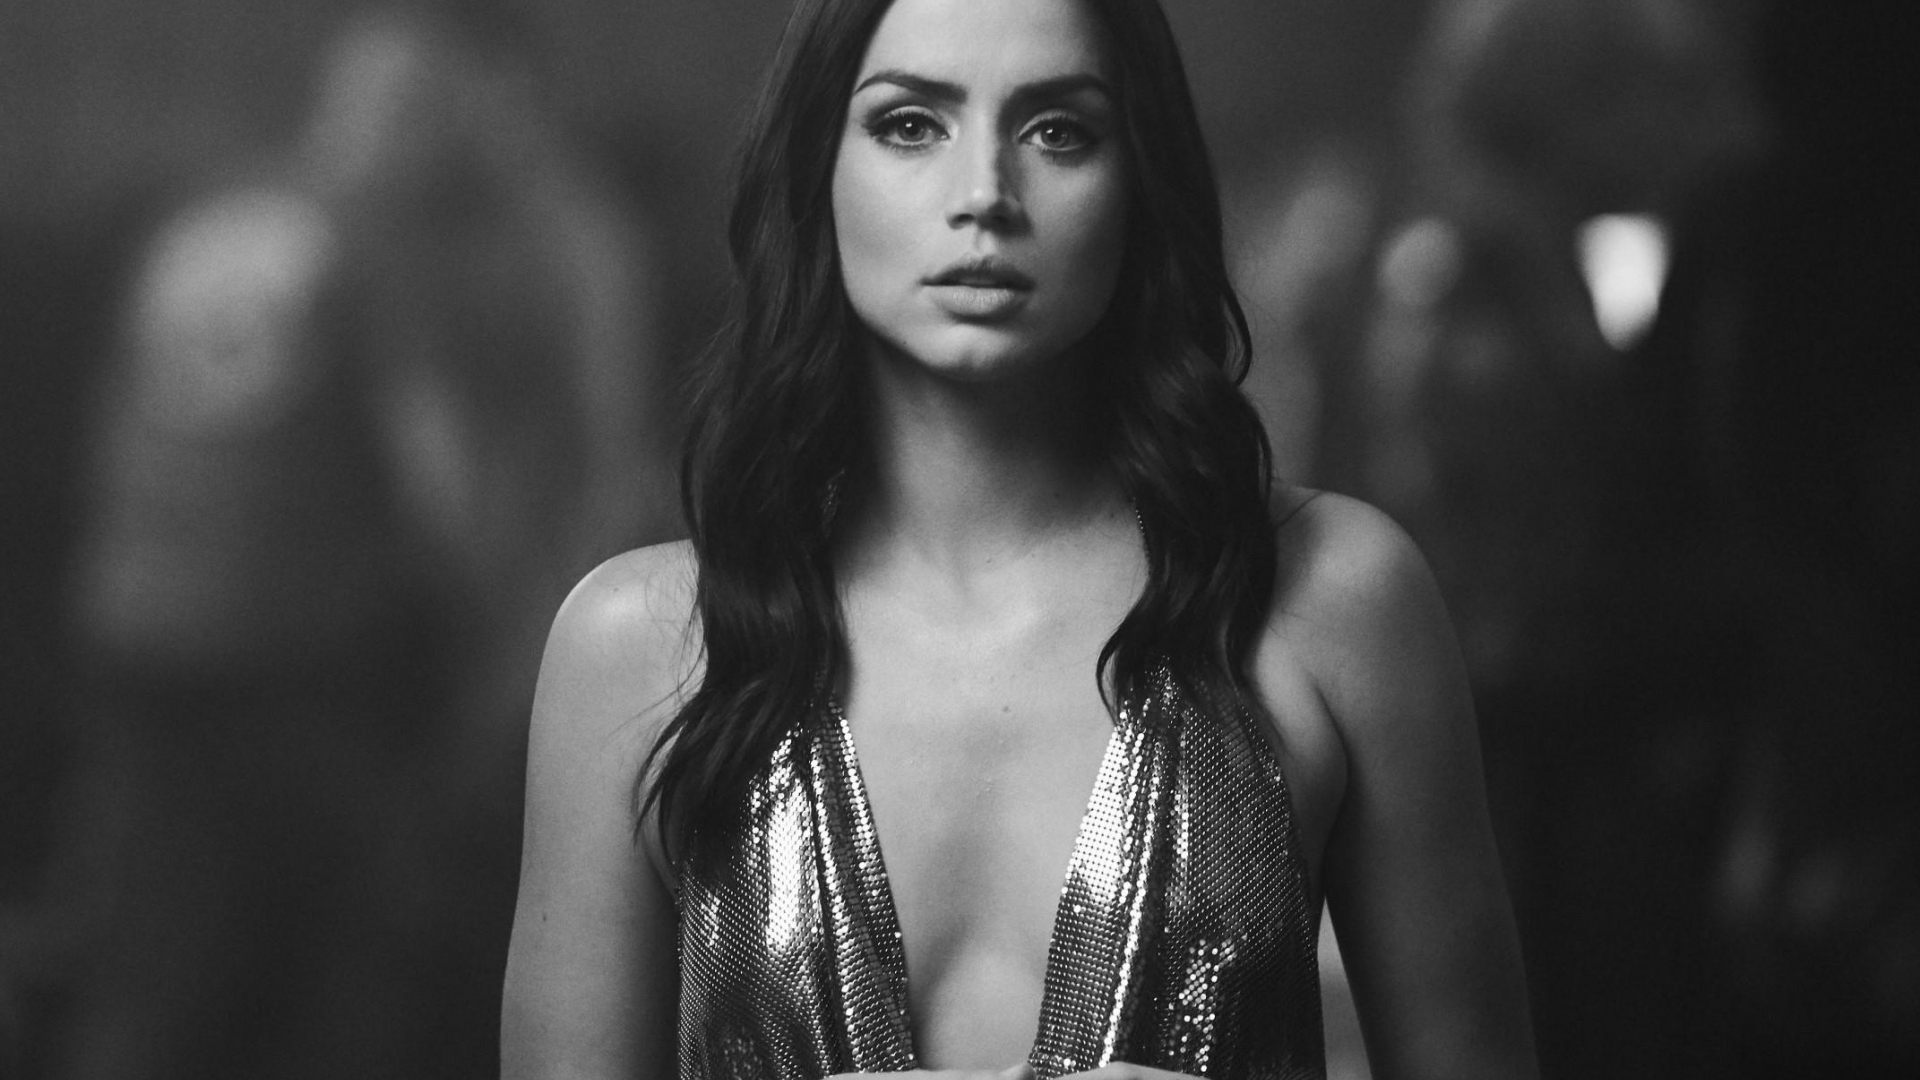 Free Download Ana De Armas Beautiful Hollywood 2143x2000 For